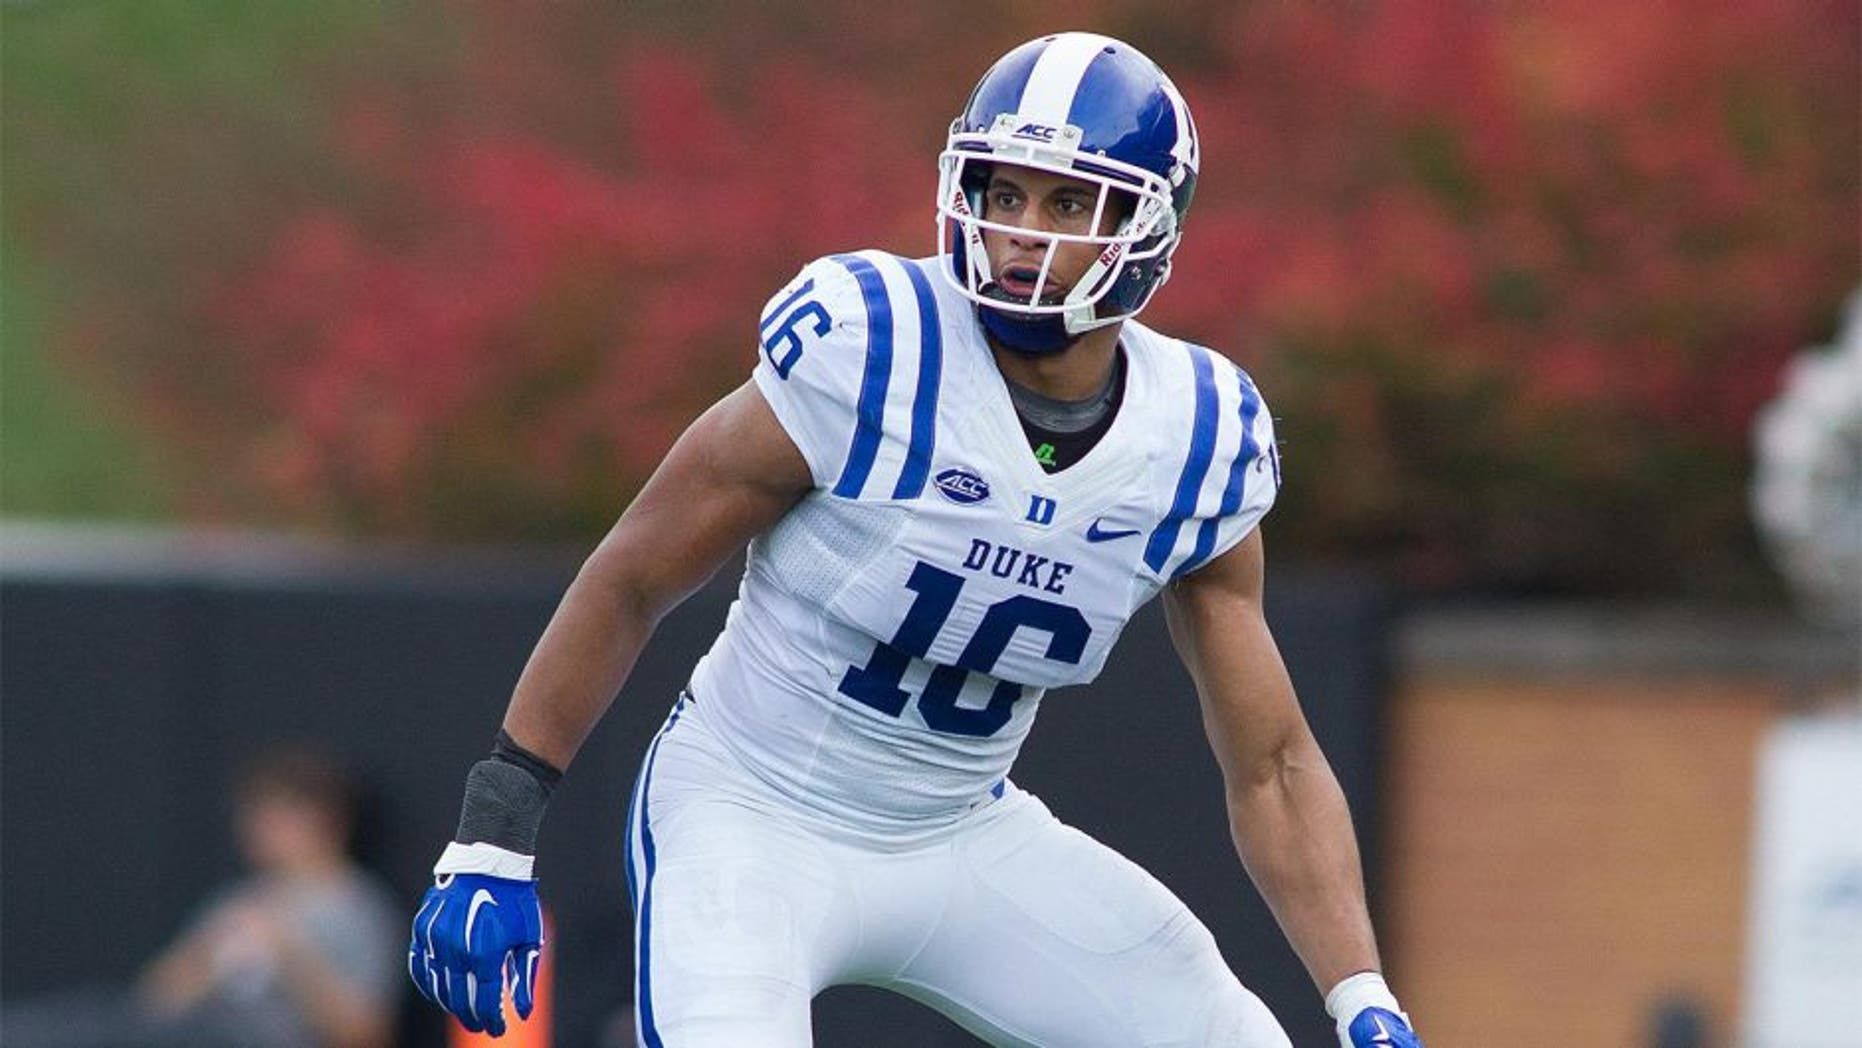 Nov 28, 2015; Winston-Salem, NC, USA; Duke Blue Devils safety Jeremy Cash (16) follows the ball during the second half against the Wake Forest Demon Deacons at BB&T Field. Duke defeated Wake Forest 27-21. Mandatory Credit: Jeremy Brevard-USA TODAY Sports